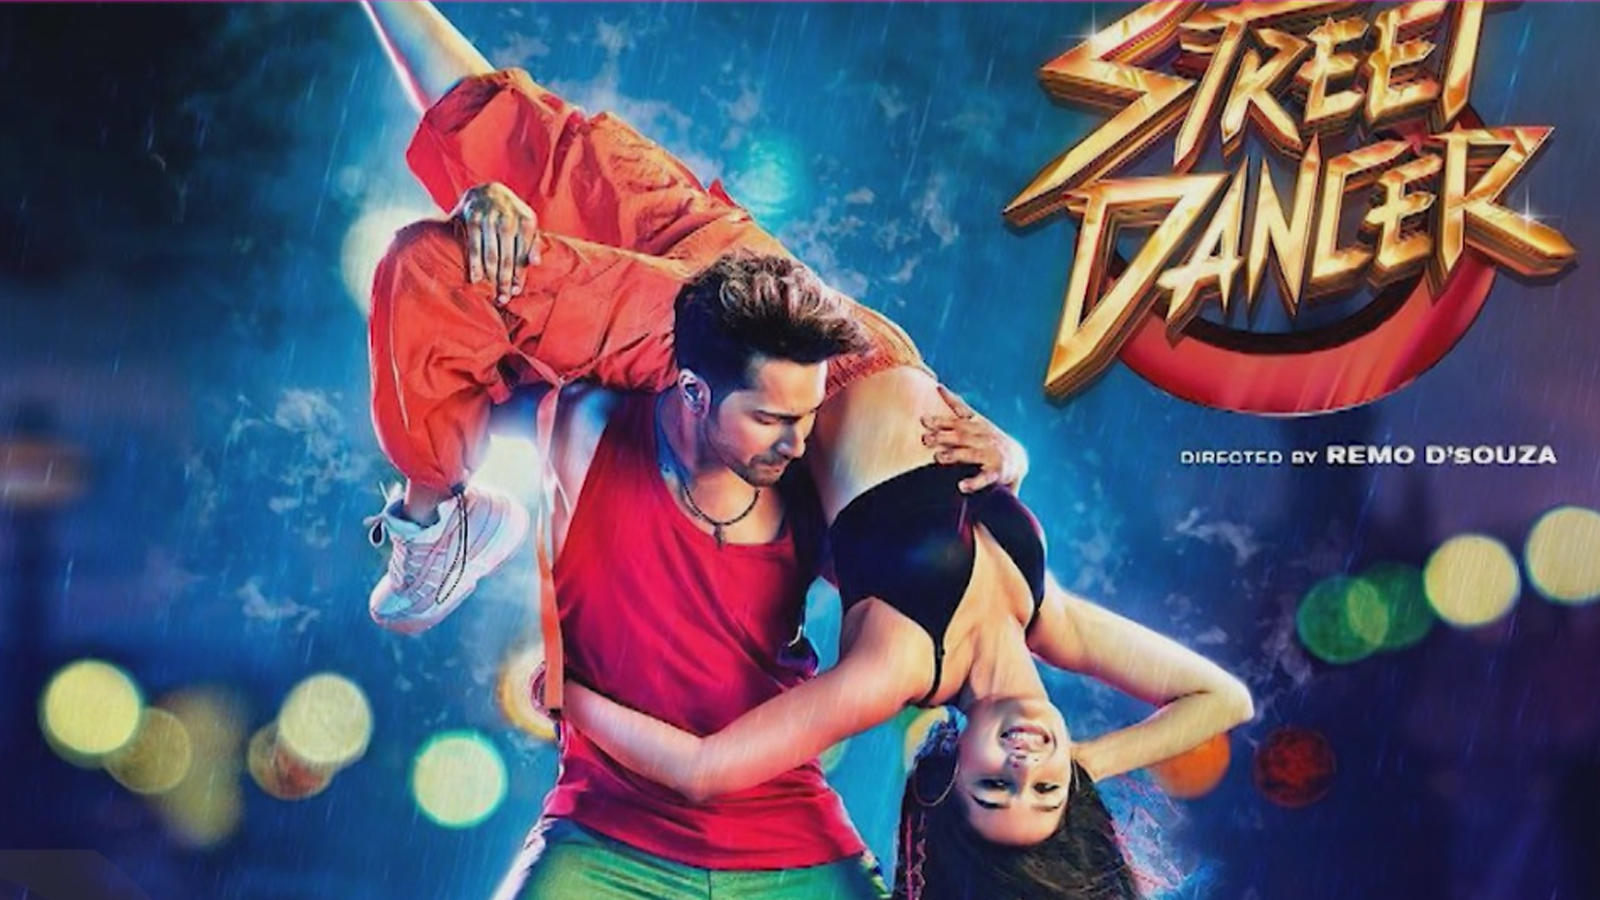 Varun Dhawan takes up the responsibility of providing support to the street dancers